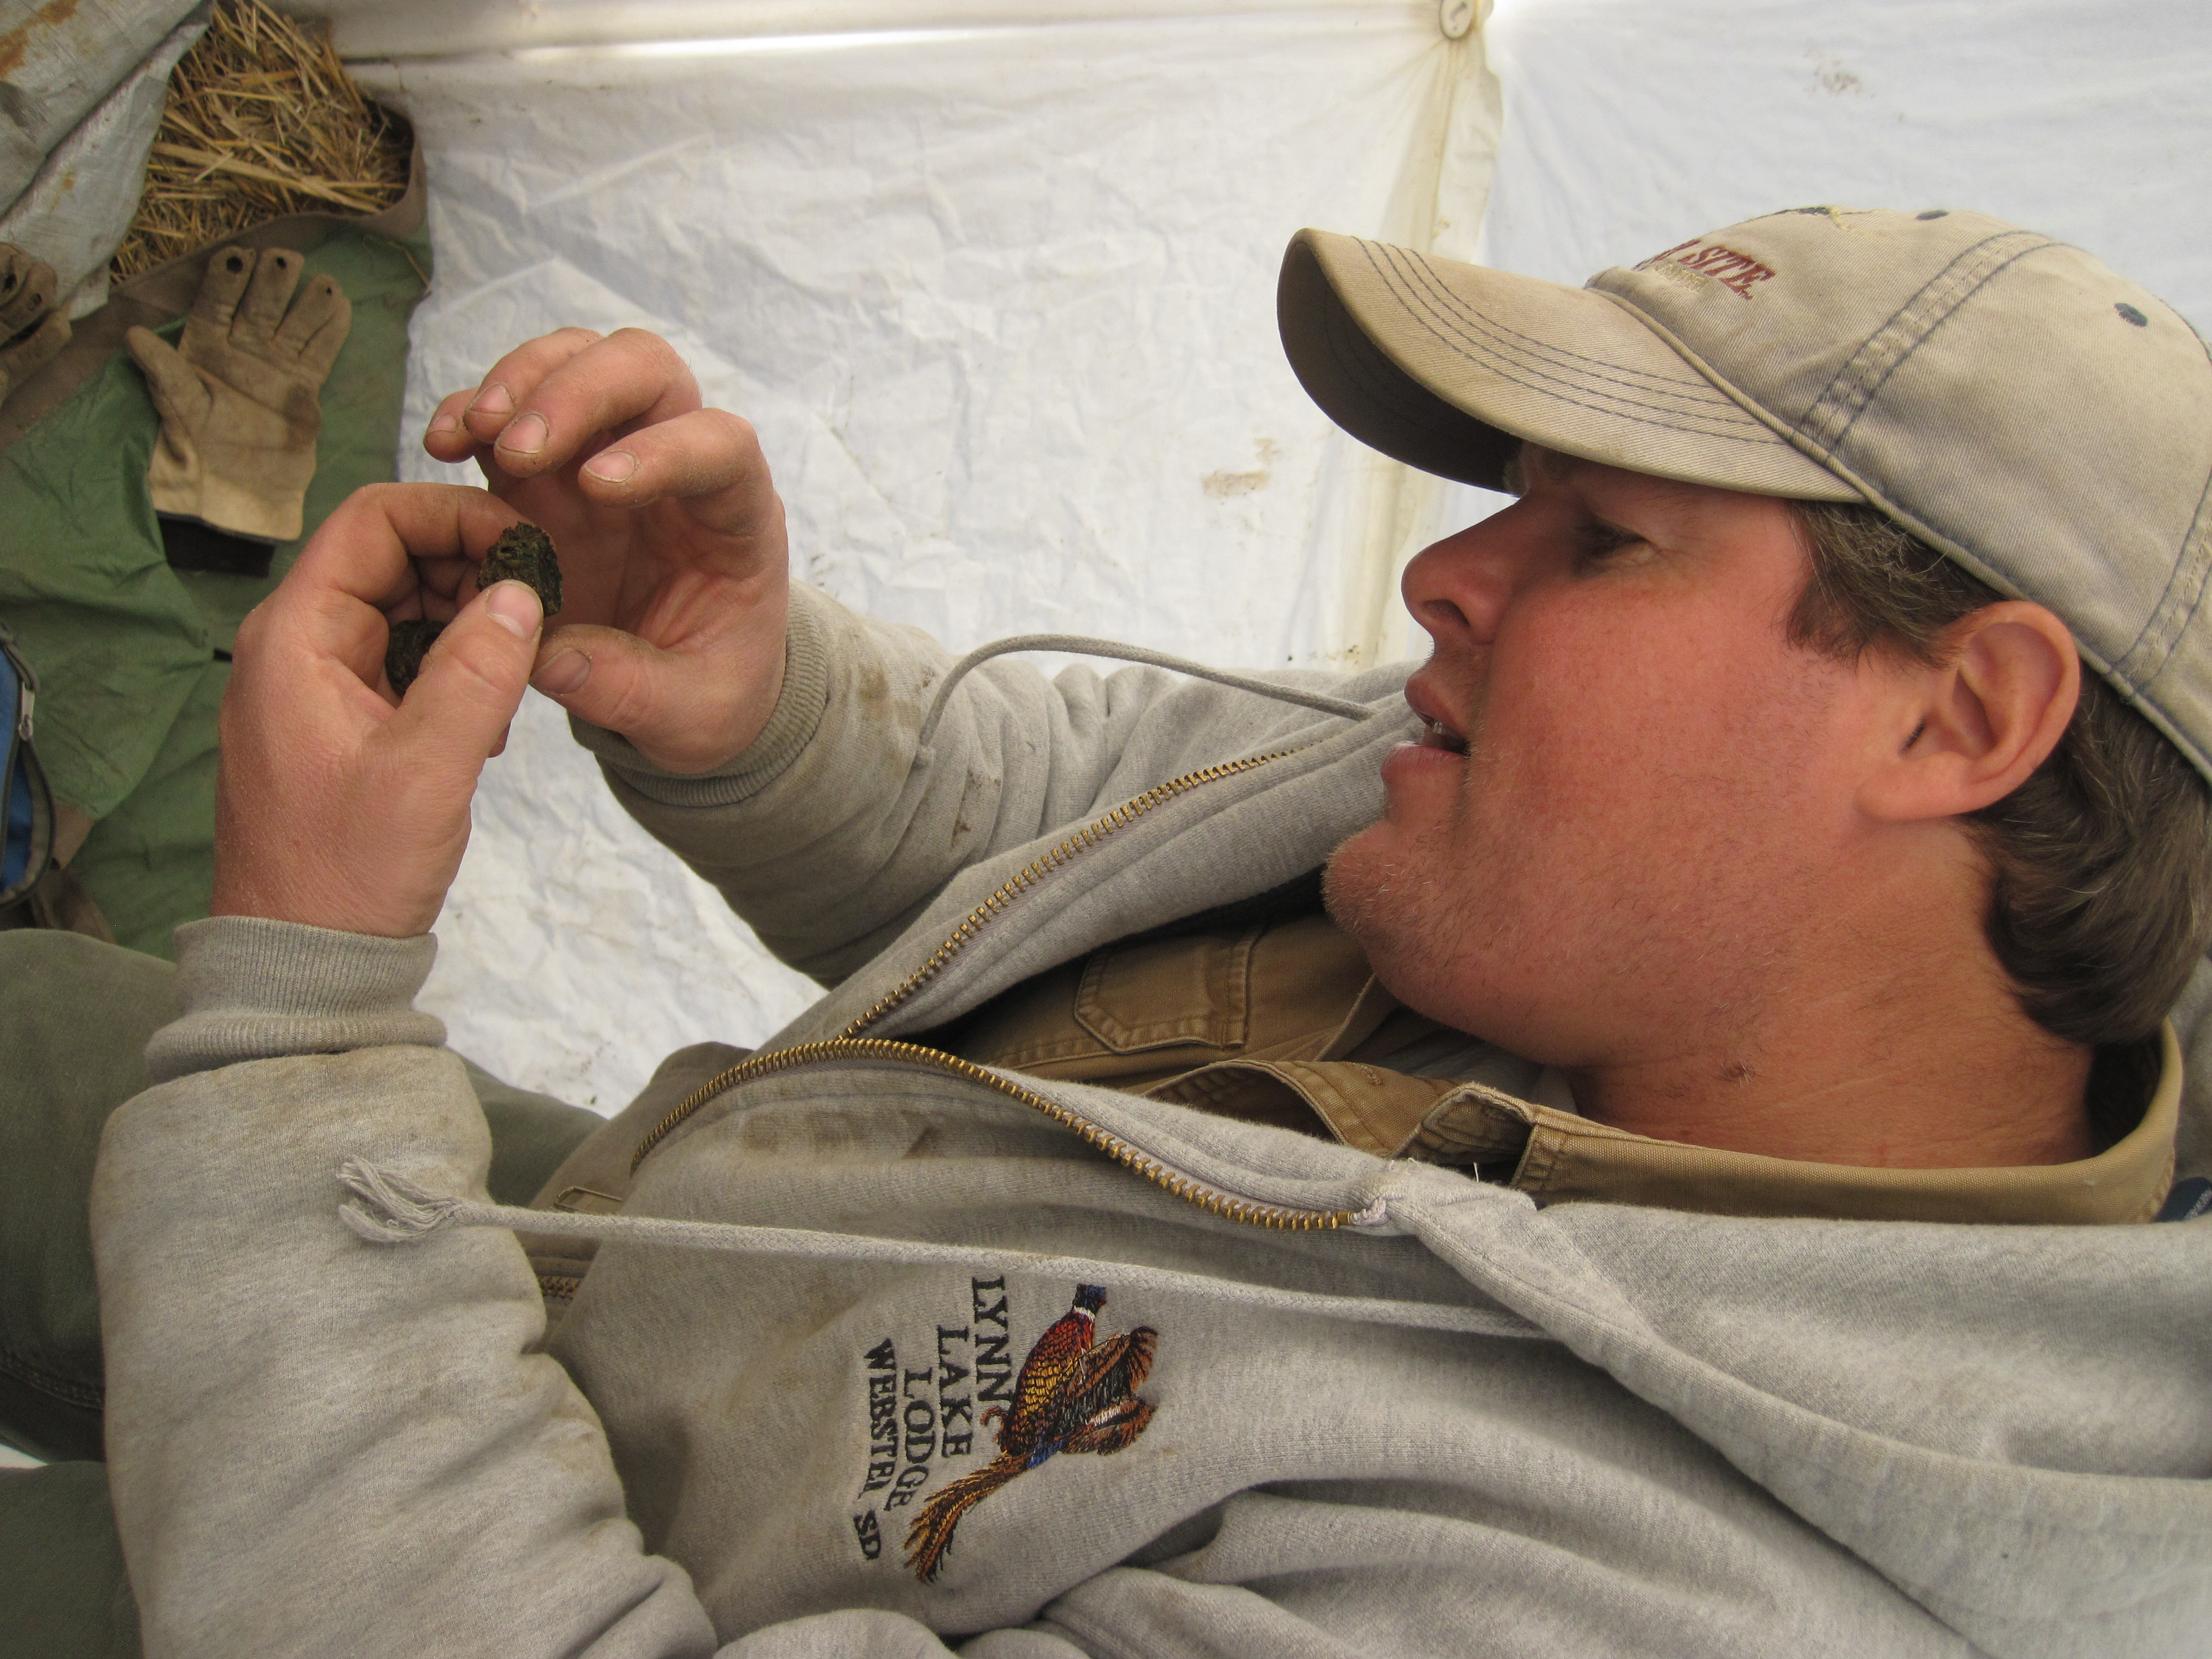 Dan Horgen examines one of the shotgun shells recovered from the privy